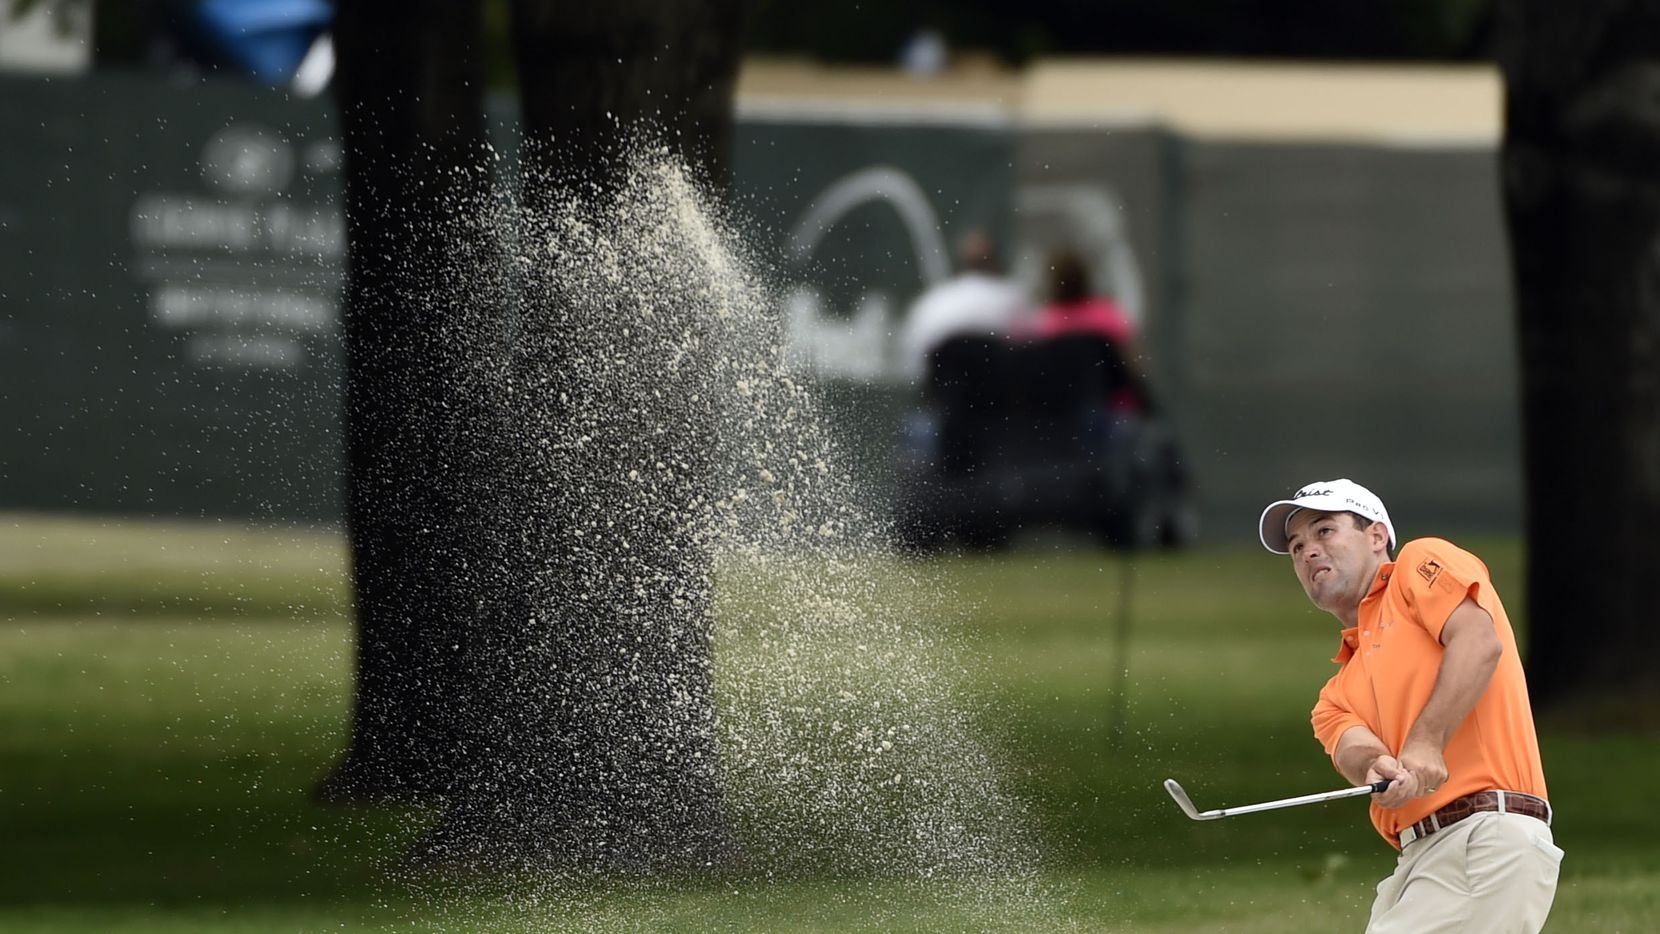 Robert Streb hits from the 9th fairway trap, during the second round of the Crowne Plaza Invitational at Colonial, in Fort Worth, Texas. on May 23, 2014.